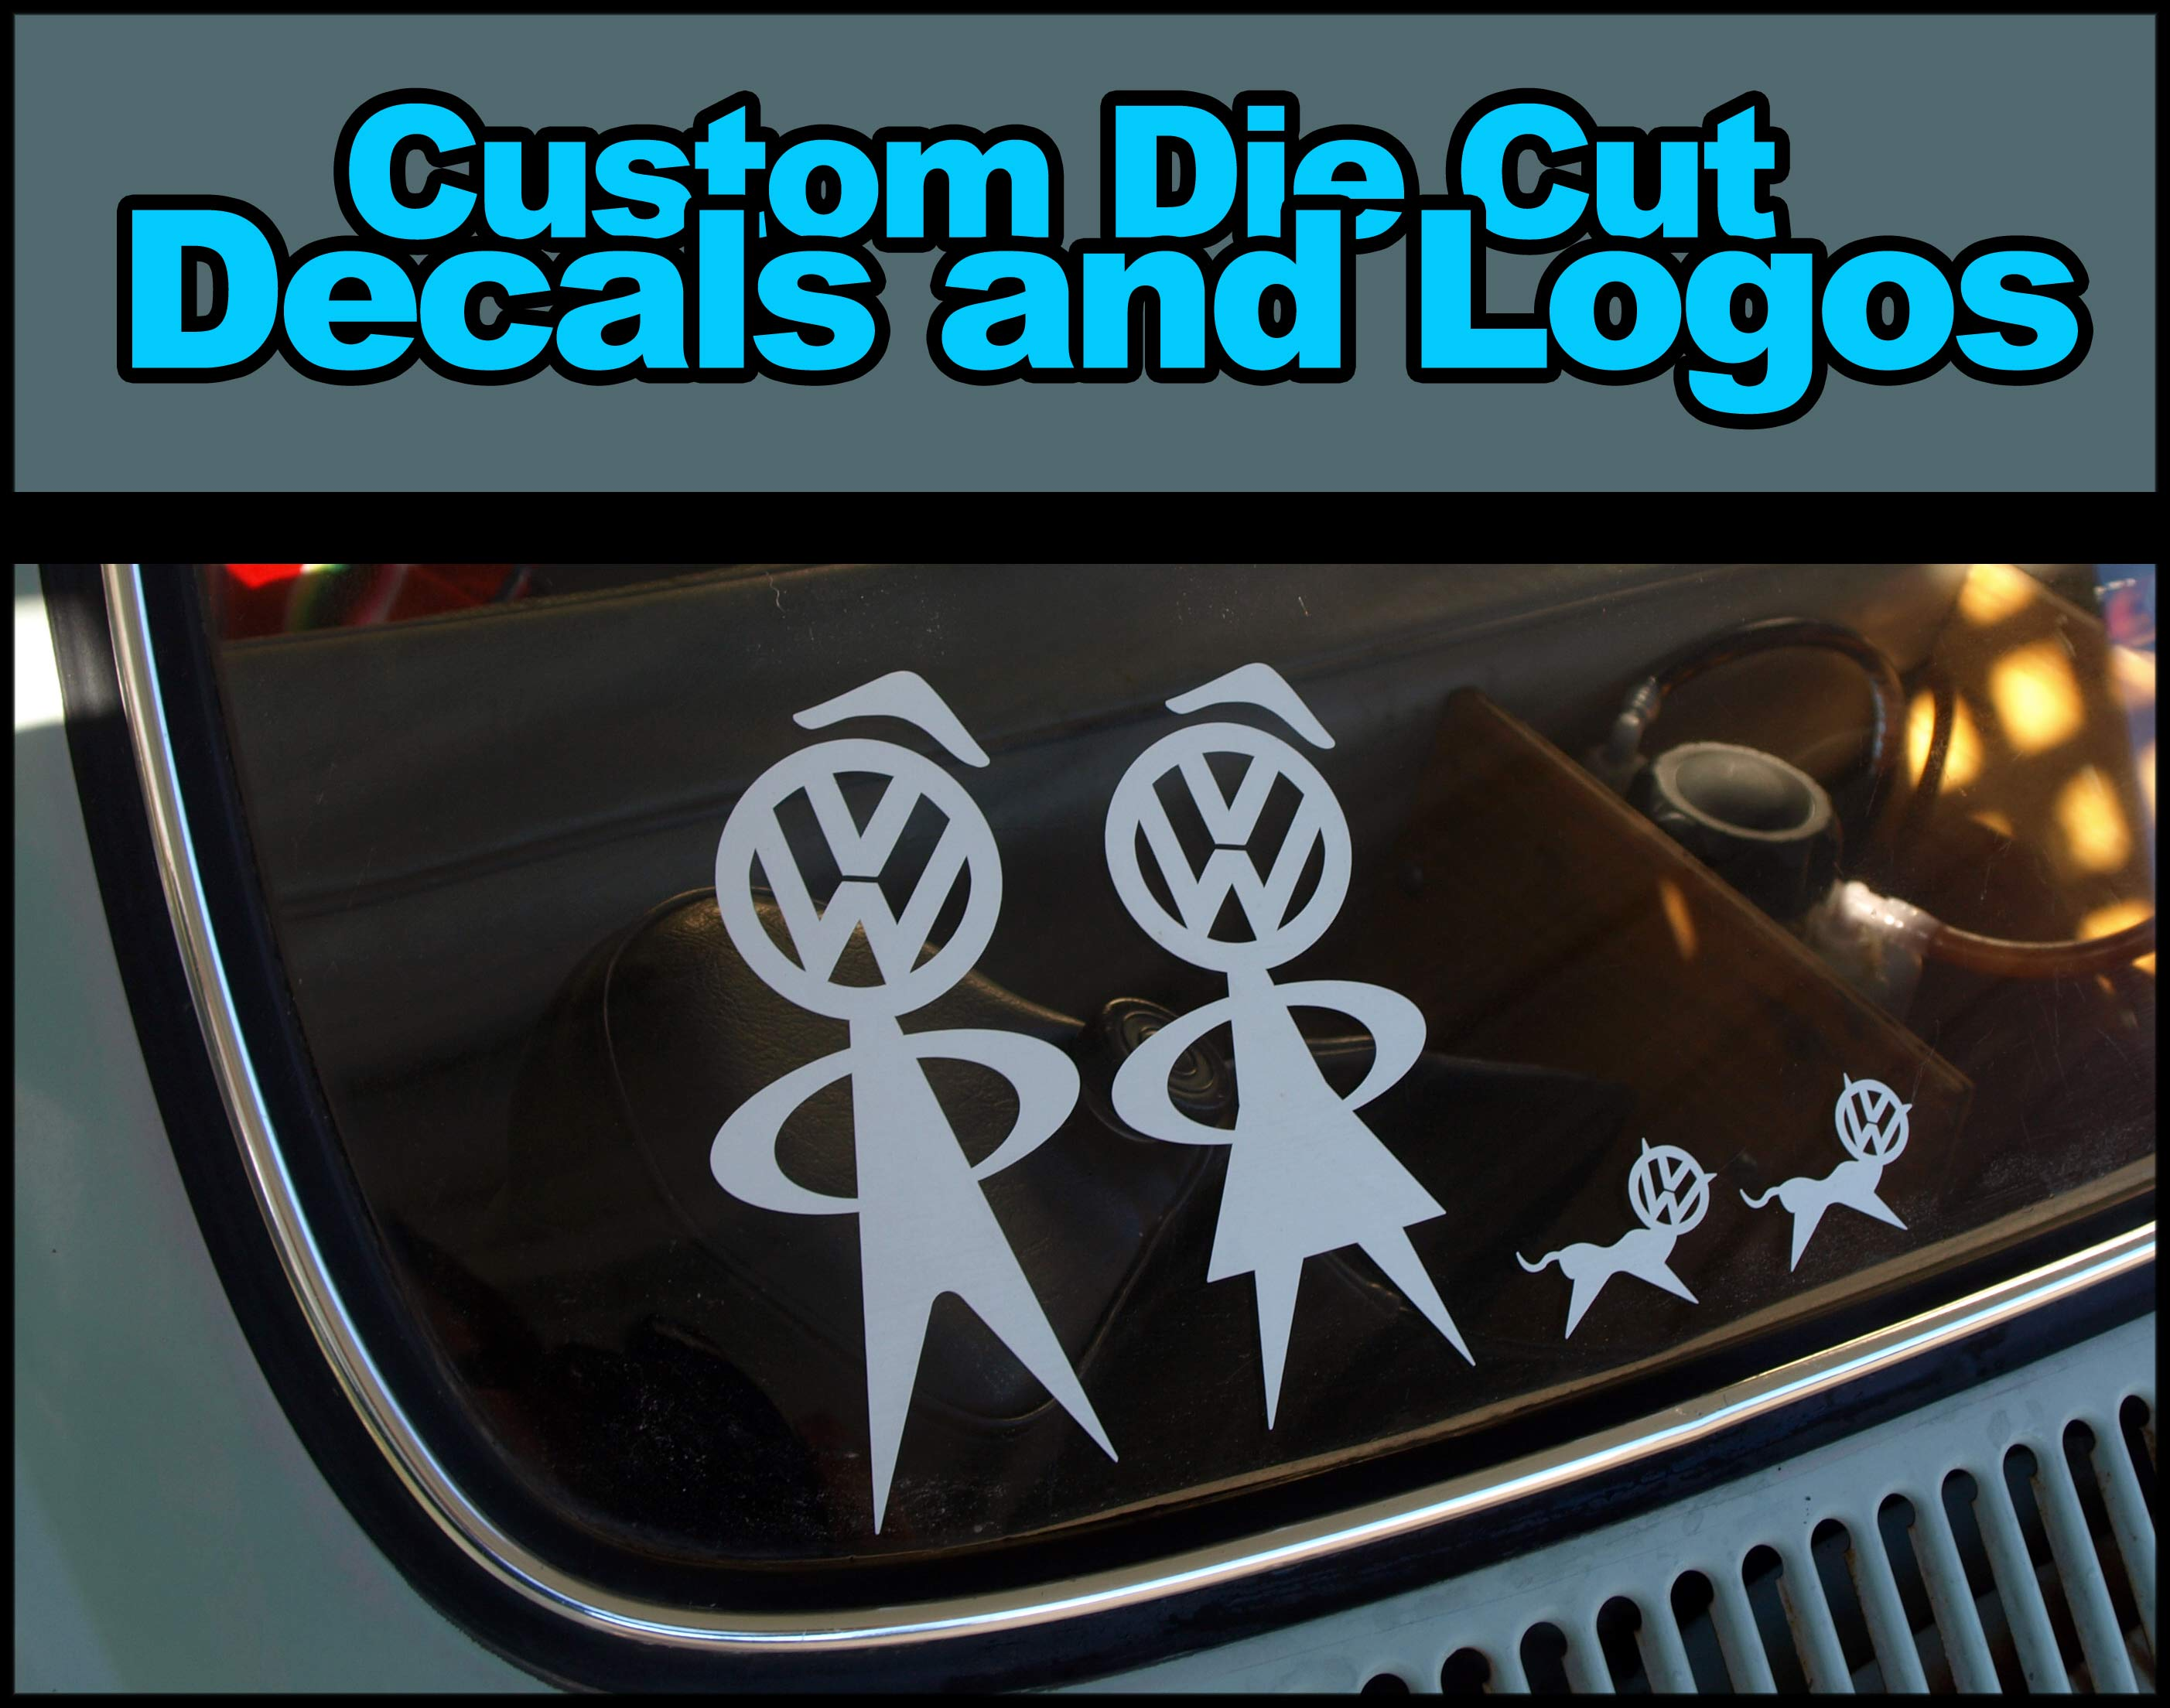 Personalized Custom Die Cut Vinyl Decals And Logos X Stick - Custom custom die cut vinyl stickers